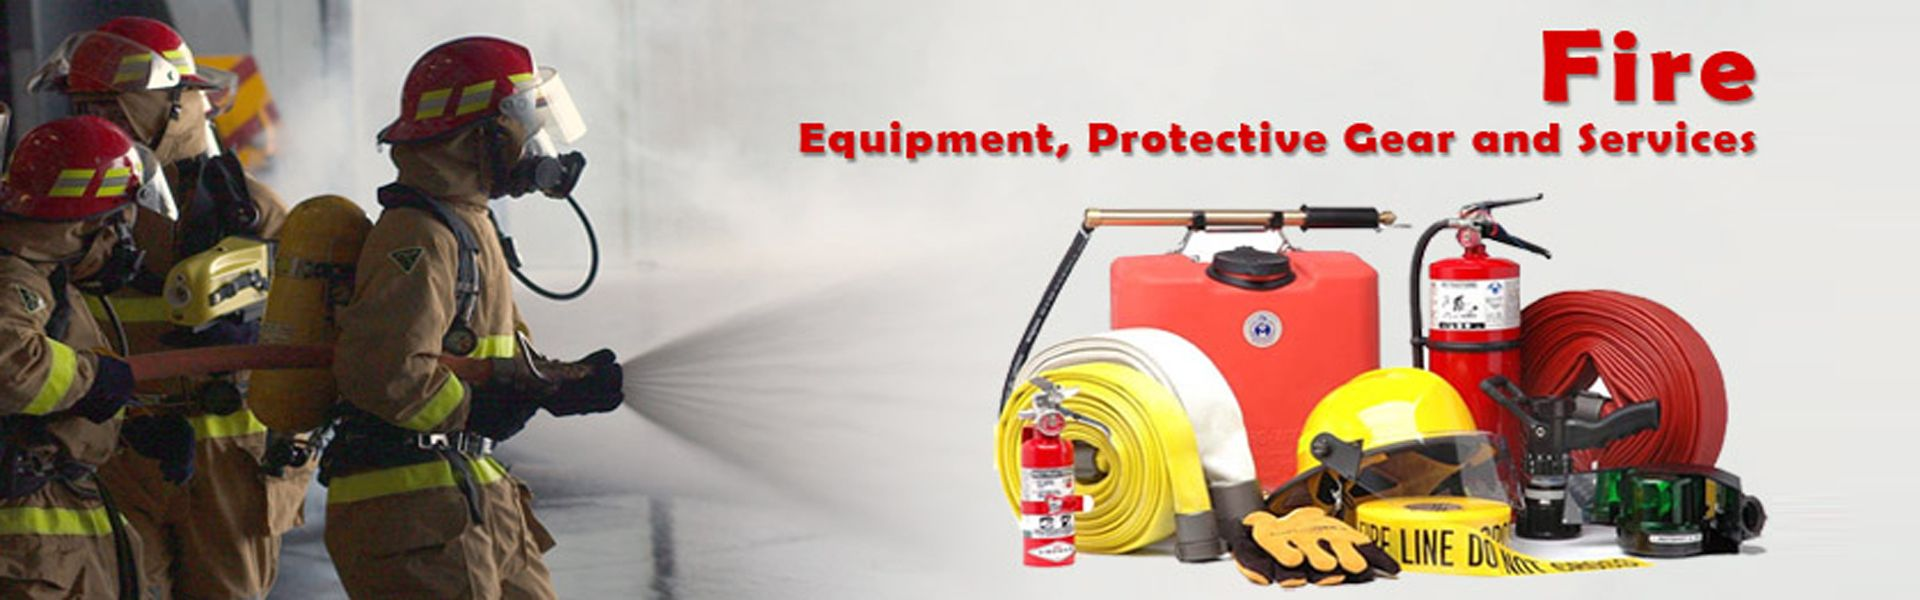 Pin on FIRE PROTECTION SYSTEM